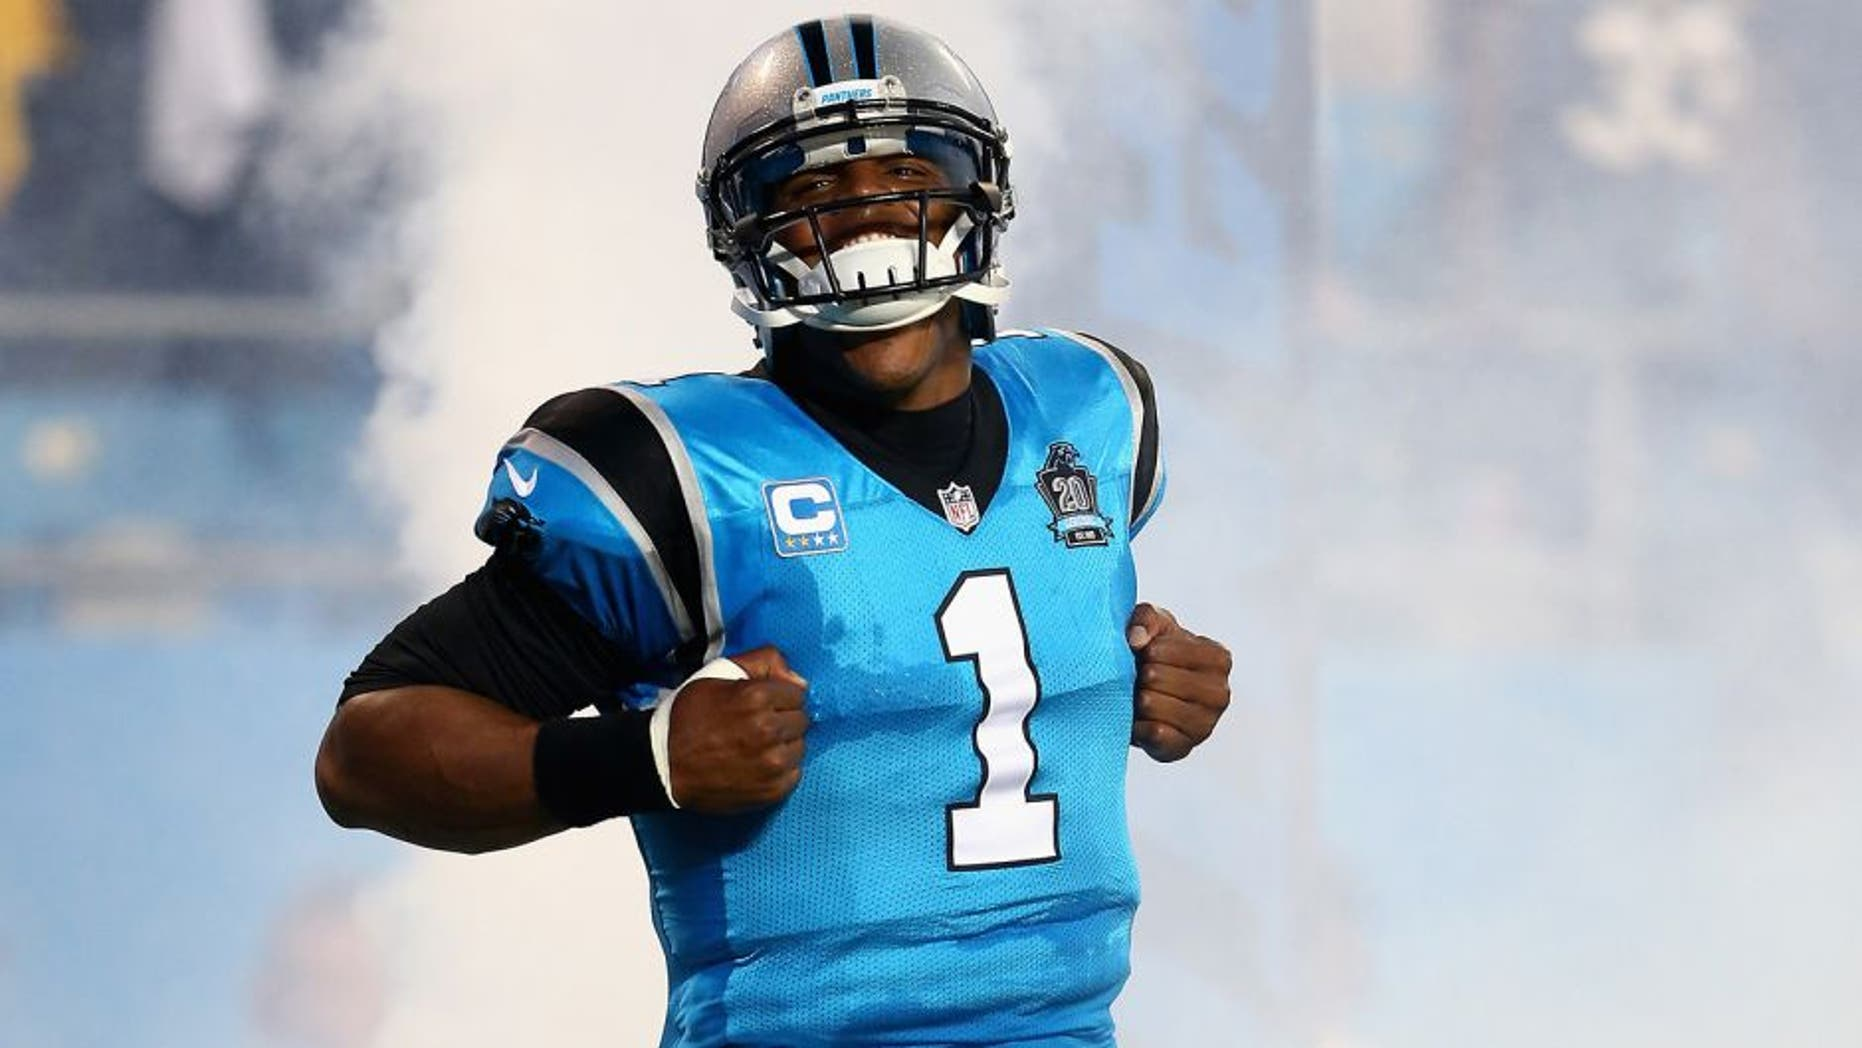 CHARLOTTE, NC - SEPTEMBER 21: Cam Newton #1 of the Carolina Panthers makes his entrance against the Pittsburgh Steelers during the game at Bank of America Stadium on September 21, 2014 in Charlotte, North Carolina. (Photo by Streeter Lecka/Getty Images)